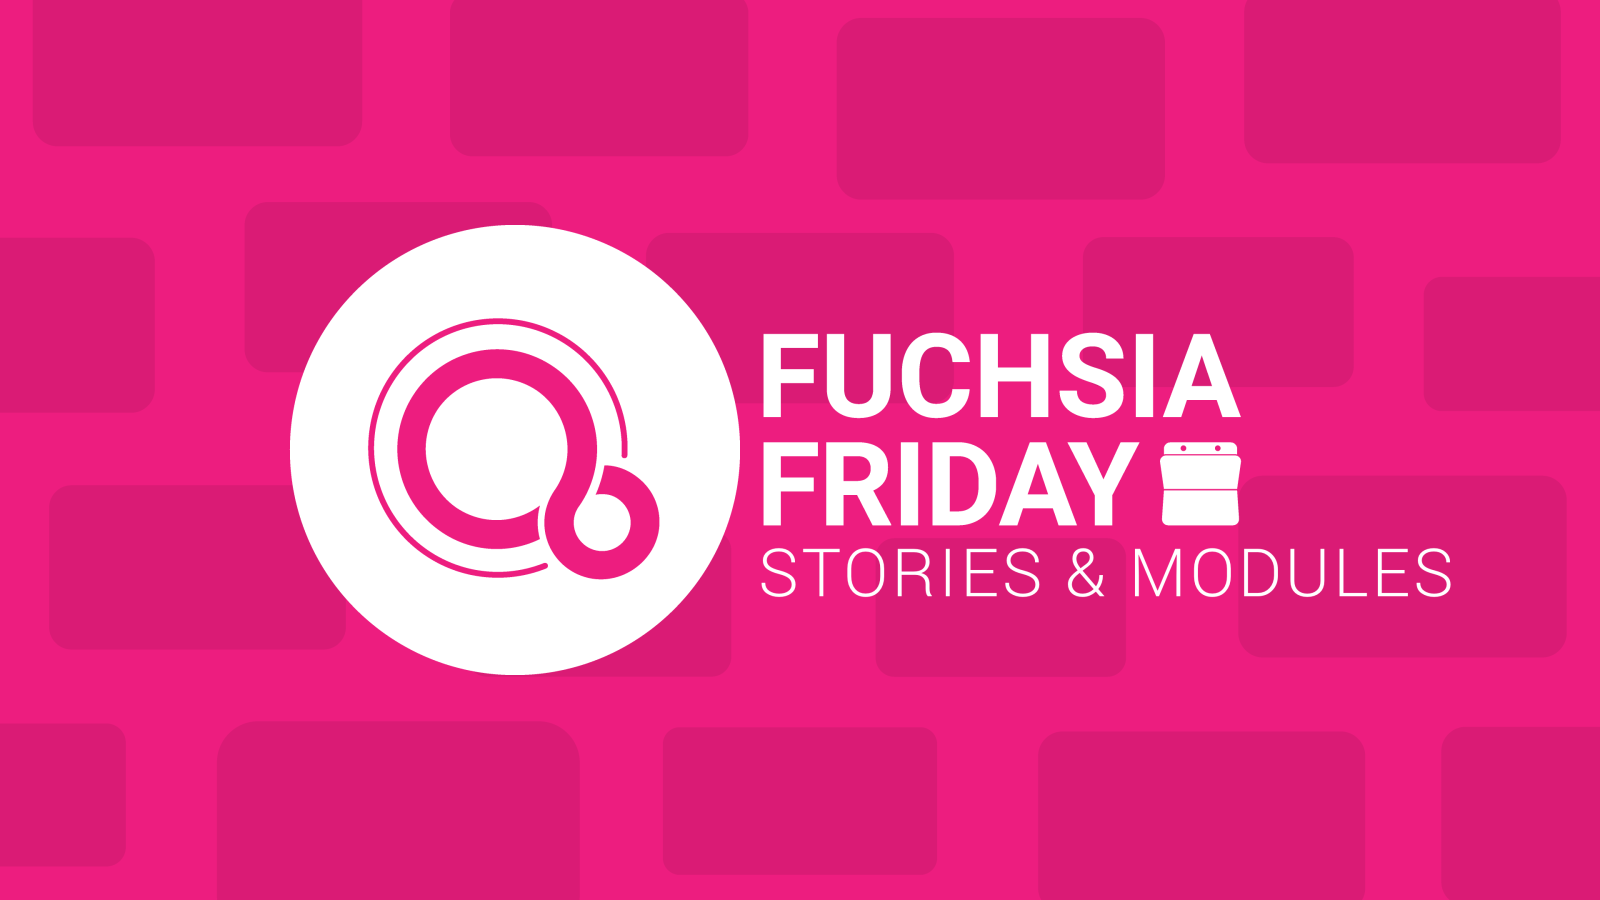 Fuchsia Friday: What are Stories and Modules?